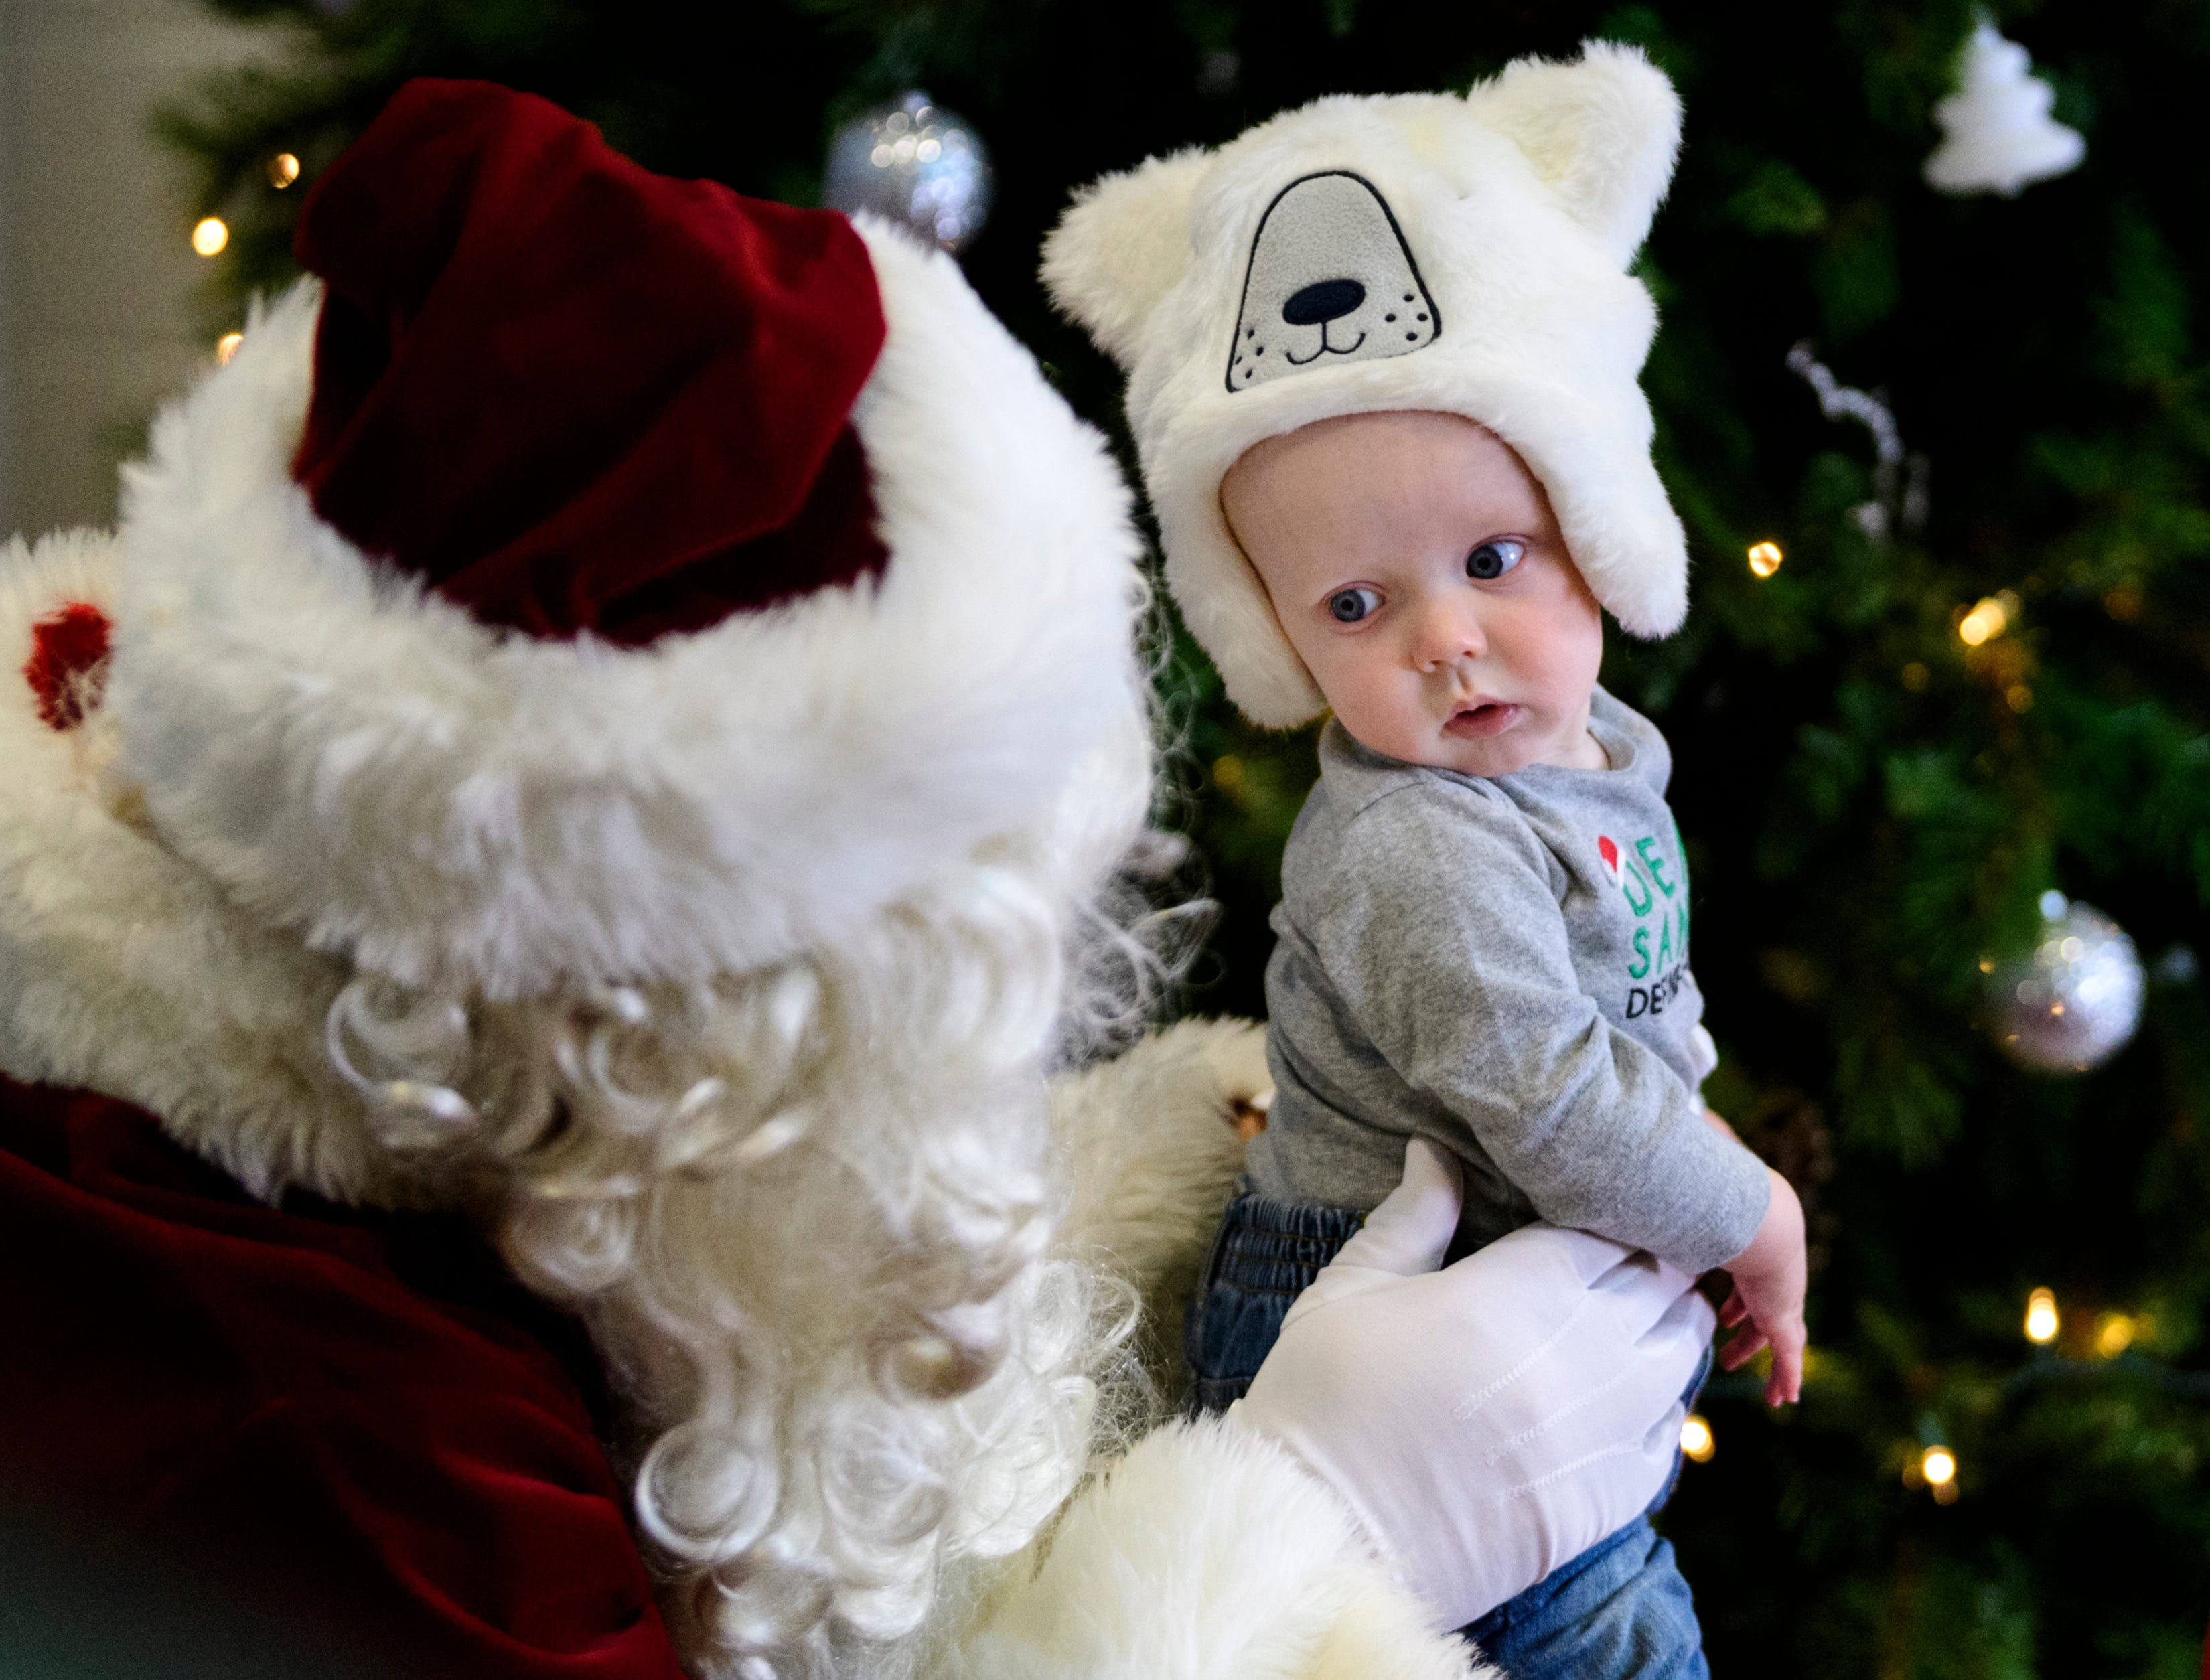 """Seven-month-old Xander Vaughn stares at Santa while they take a portrait alongside his brother Gabriel Vaughn, 3, not pictured, during the ninth annual """"Skating with Santa"""" event at Swonder Ice Arena in Evansville, Sunday evening, Dec. 16.  A portion the event's proceeds were donated to Autism Evansville, a local non-profit resource center for families with children on the autistic spectrum."""